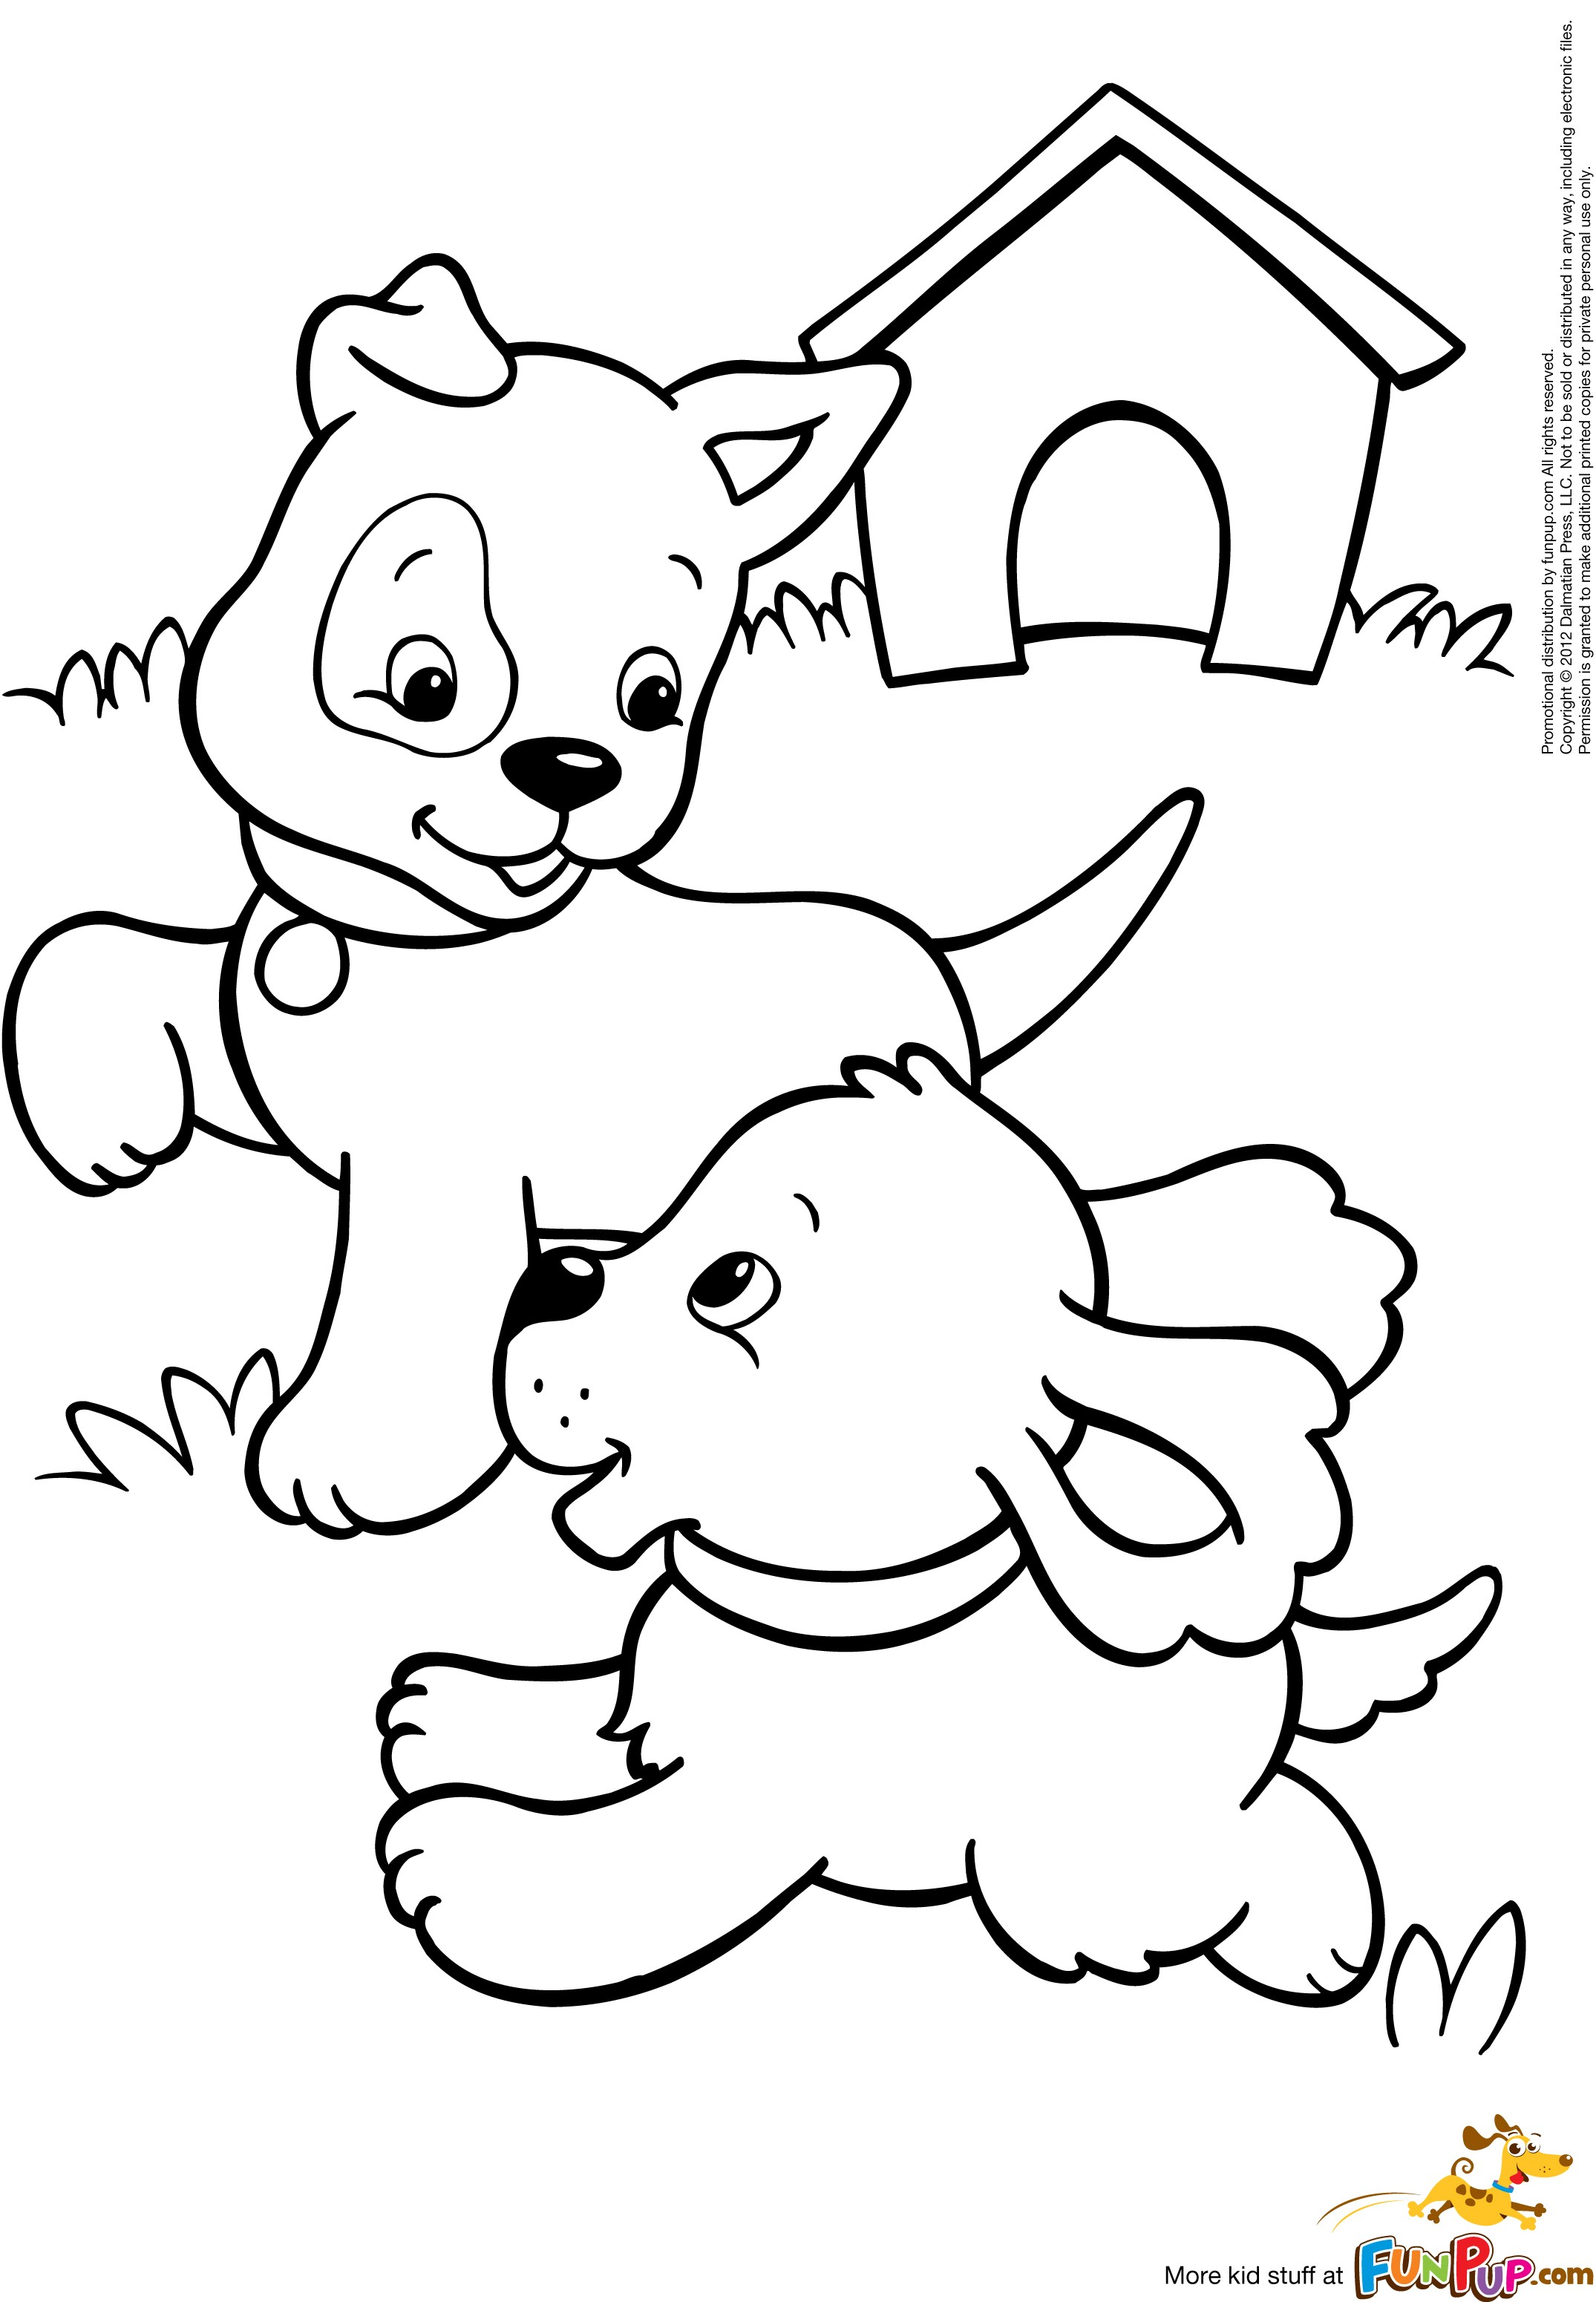 printable picture of a dog sad puppy coloring pages at getcoloringscom free dog a picture printable of